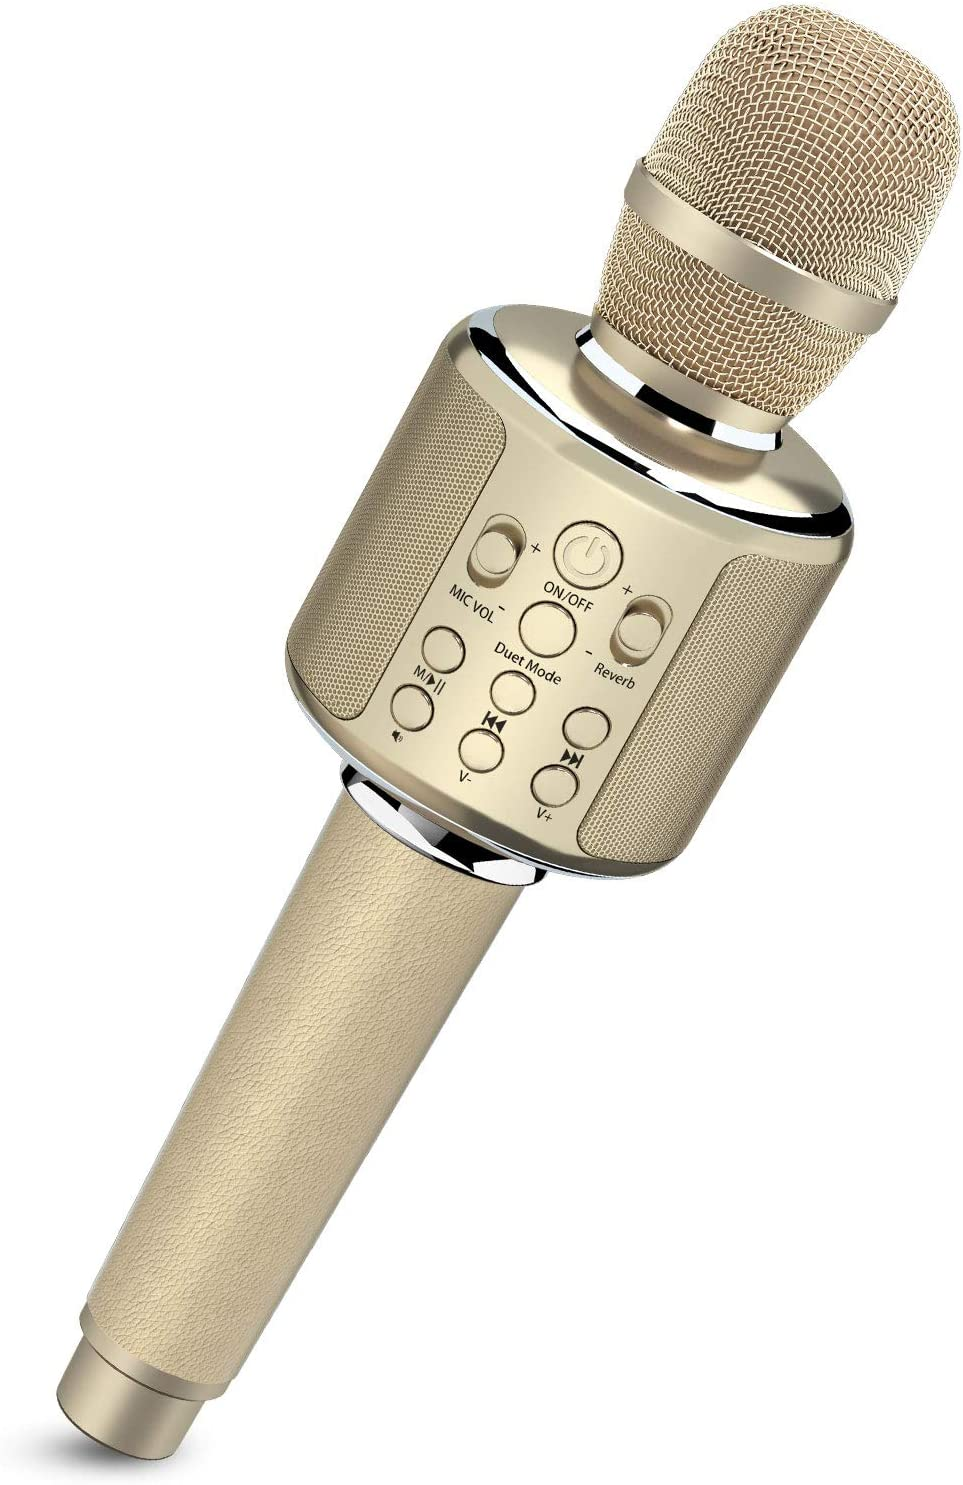 Bluetooth Karaoke Microphone, Wireless Portable Handheld Karaoke Mic Speaker Machine with Duet Vocal Remover Function Home Party for All Smartphone(Gold)